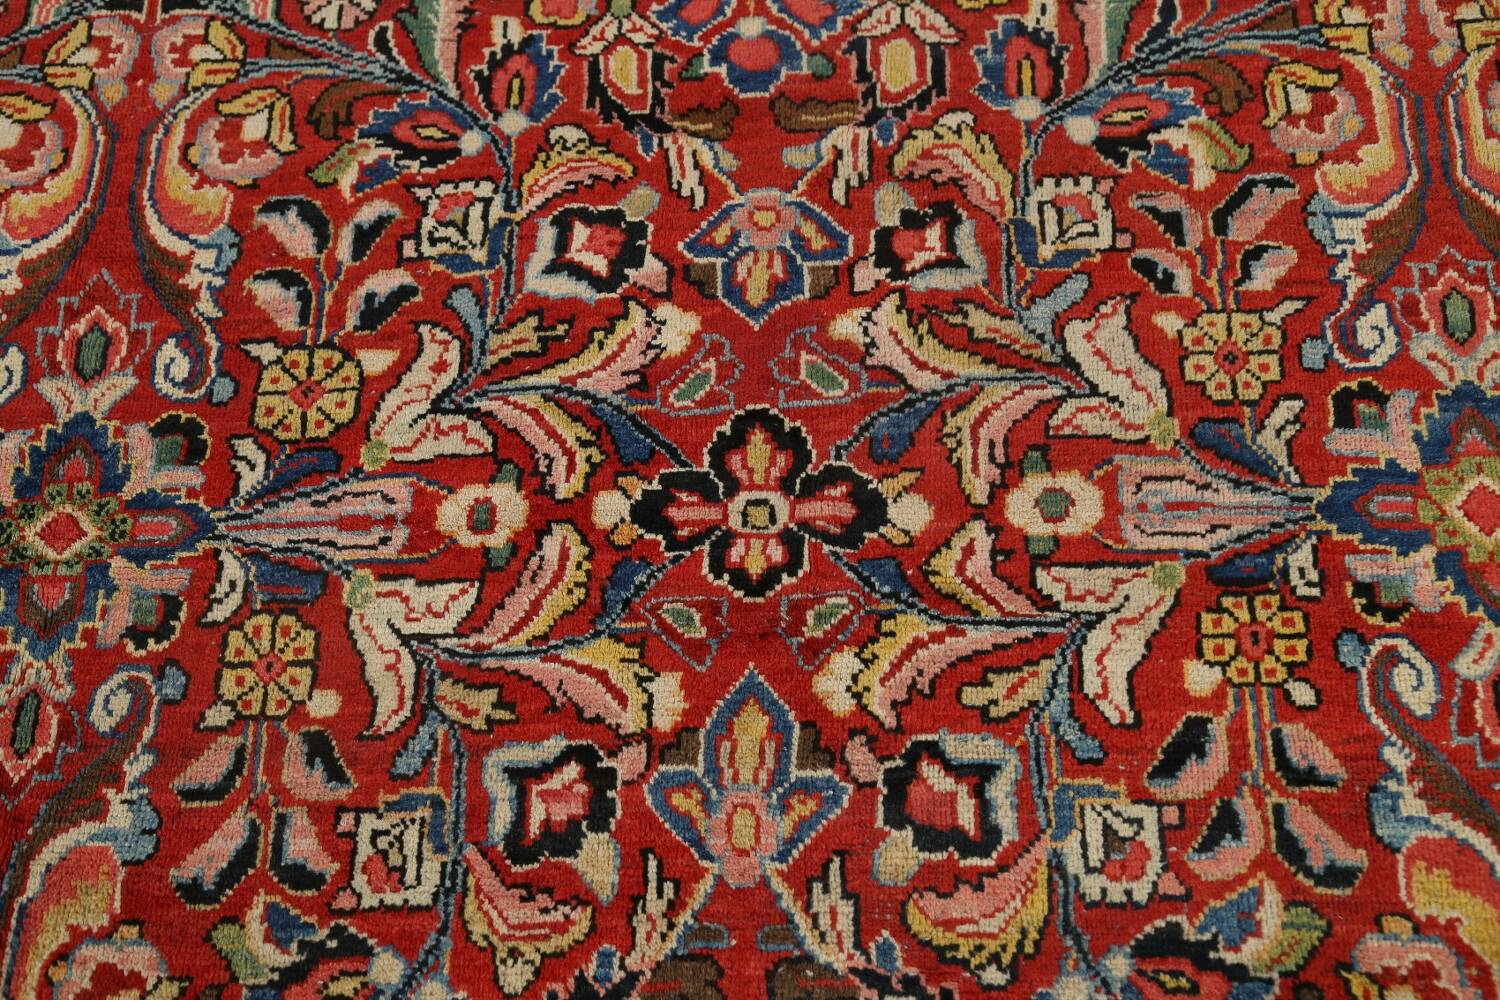 Antique Vegetable Dye Sultanabad Persian Area Rug 10x14 image 11